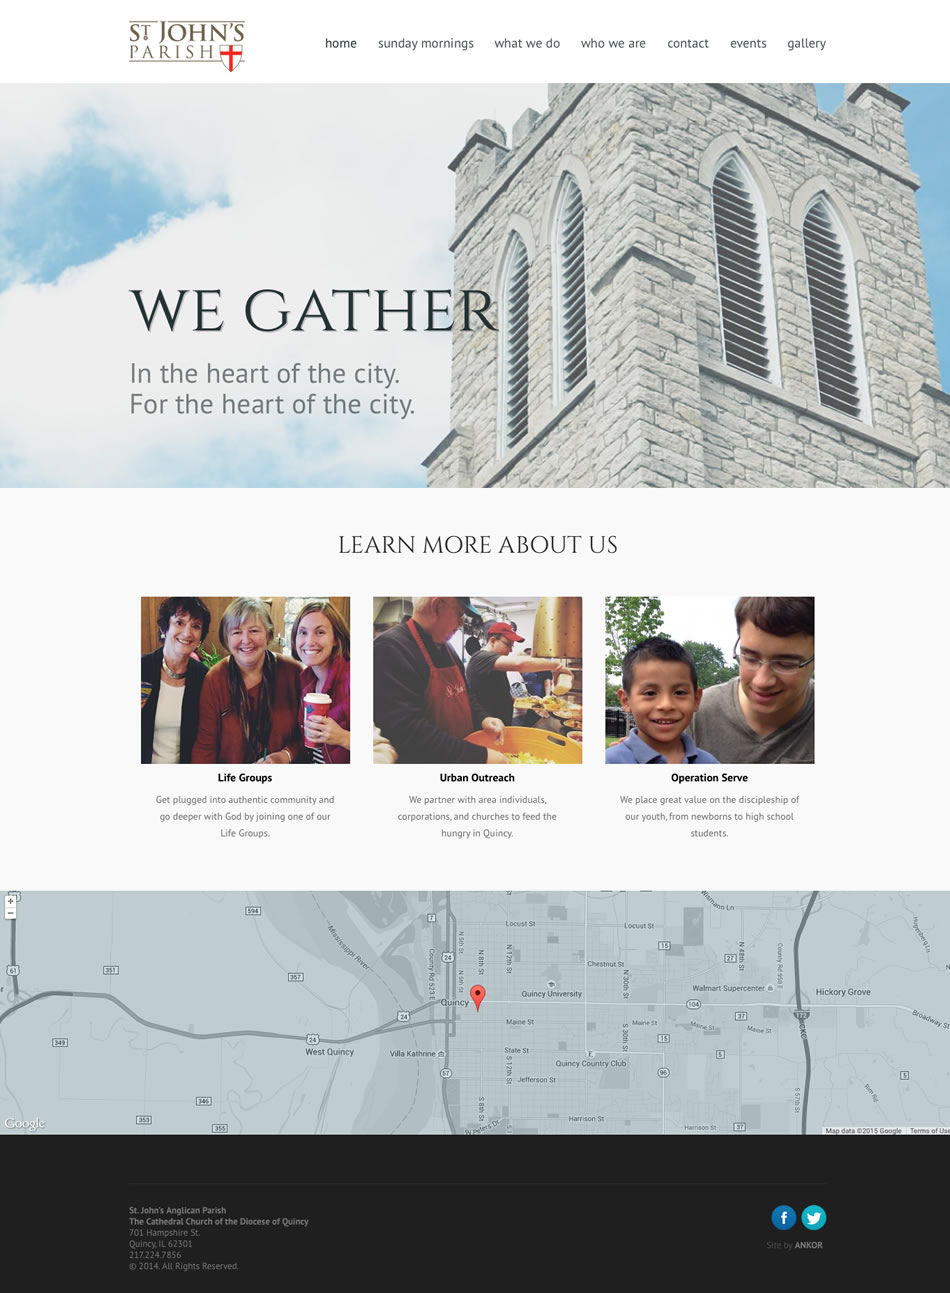 St John's Anglican Quincy Web Design By Ankor In Peoria, Illinois